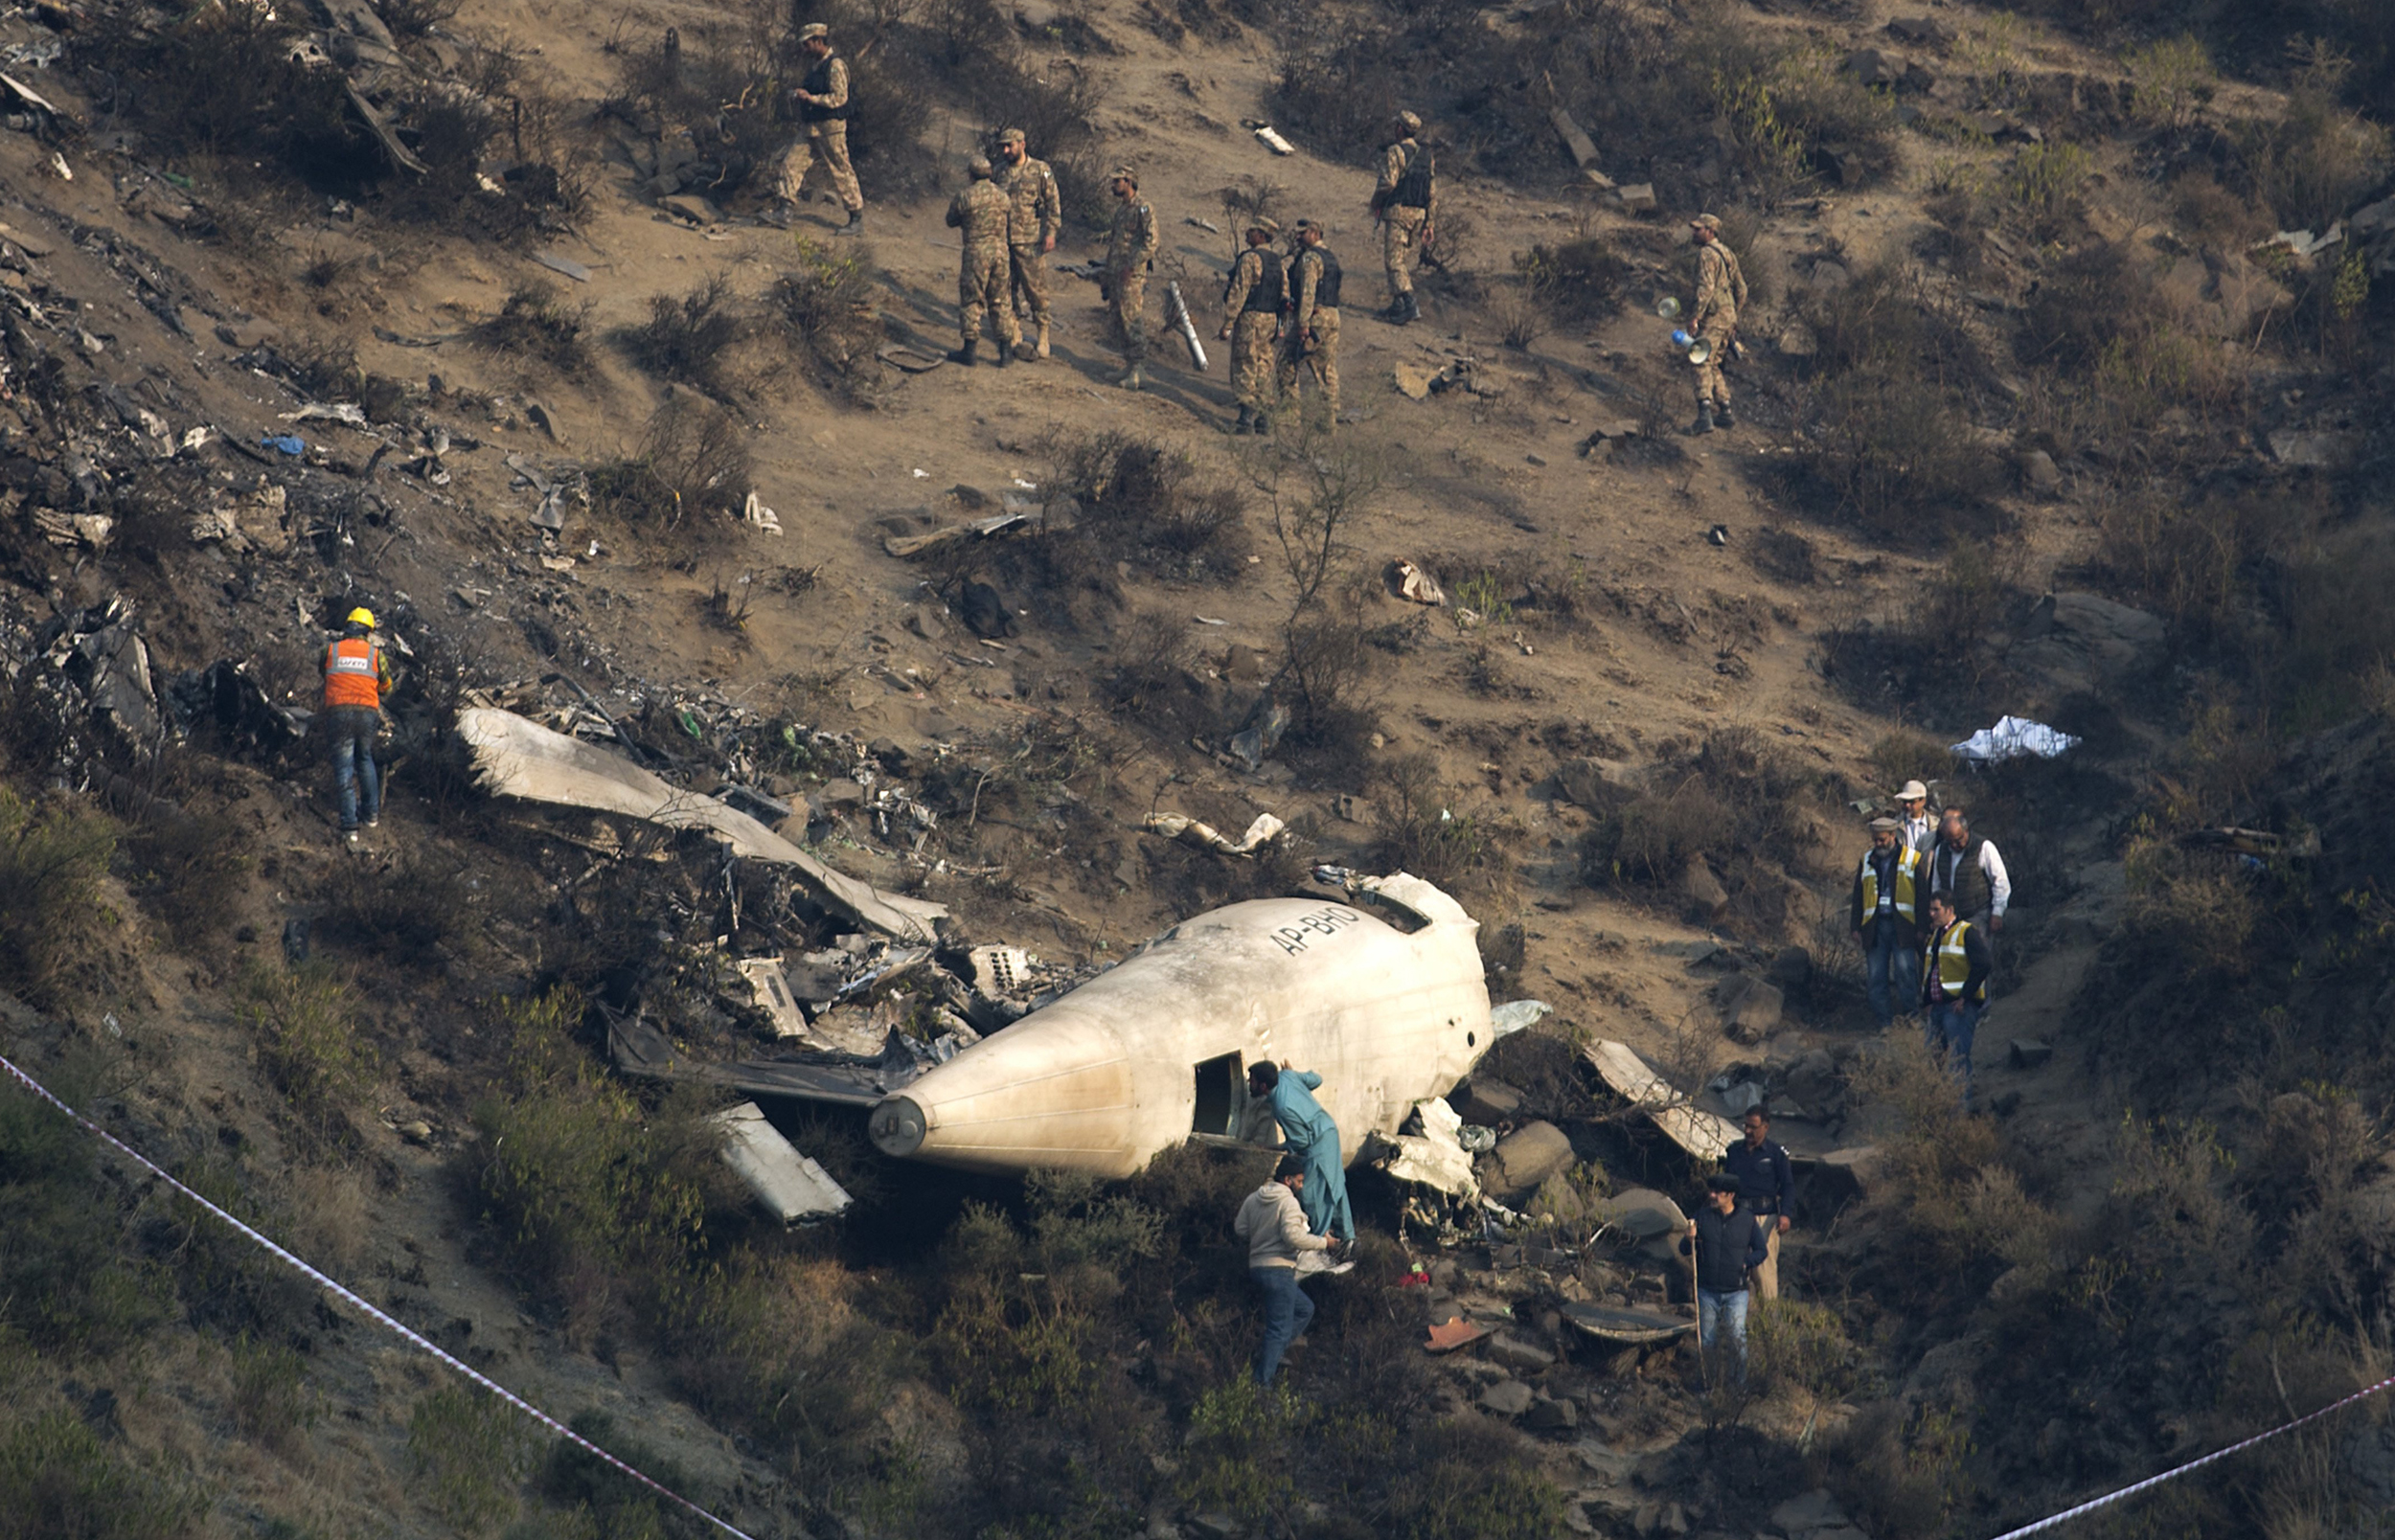 a creative essay about plane crashed A plane crash essay  a flight i can never forget please fasten your seat belt sir - a plane crash essay introduction  the voice of the flight steward woke me back from my reverie.